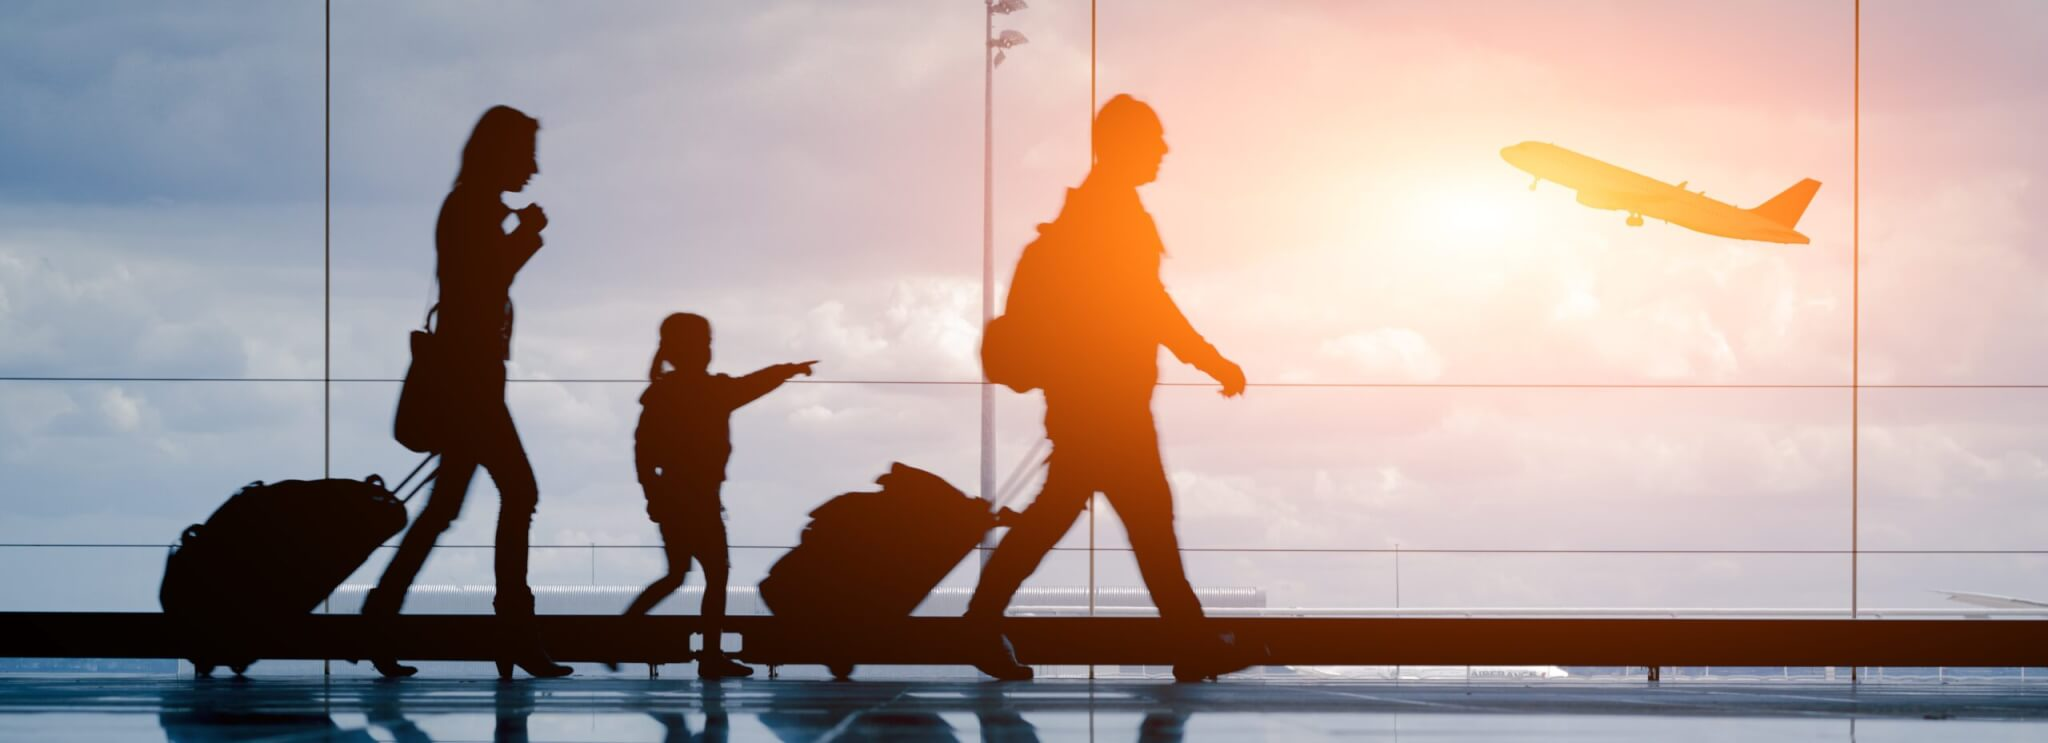 Separated parents and international travel during Covid restrictions